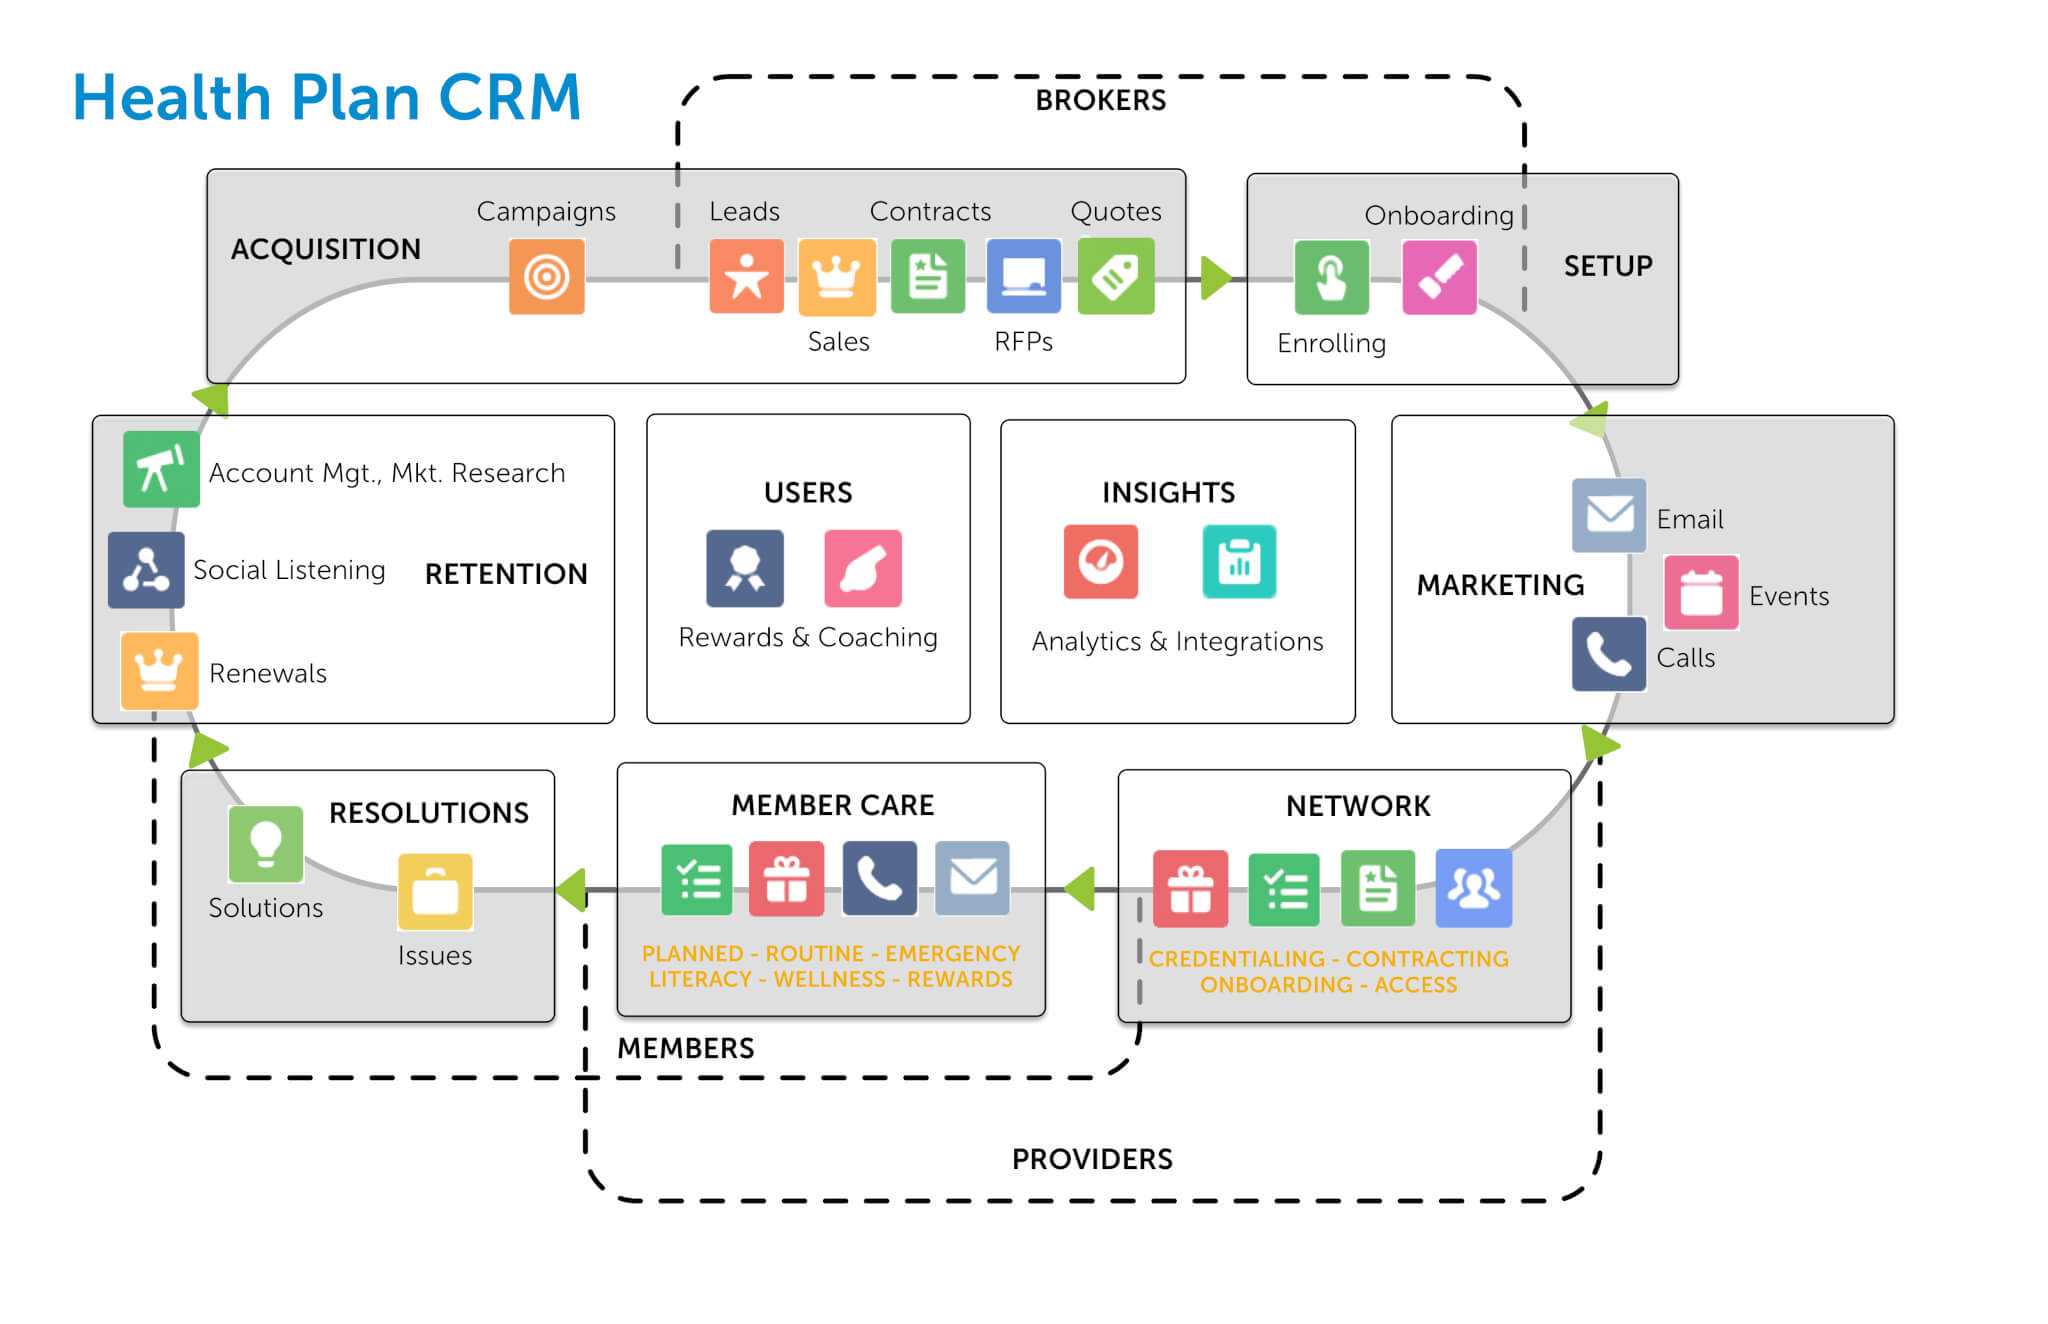 CRM Solution Map for Health Plans